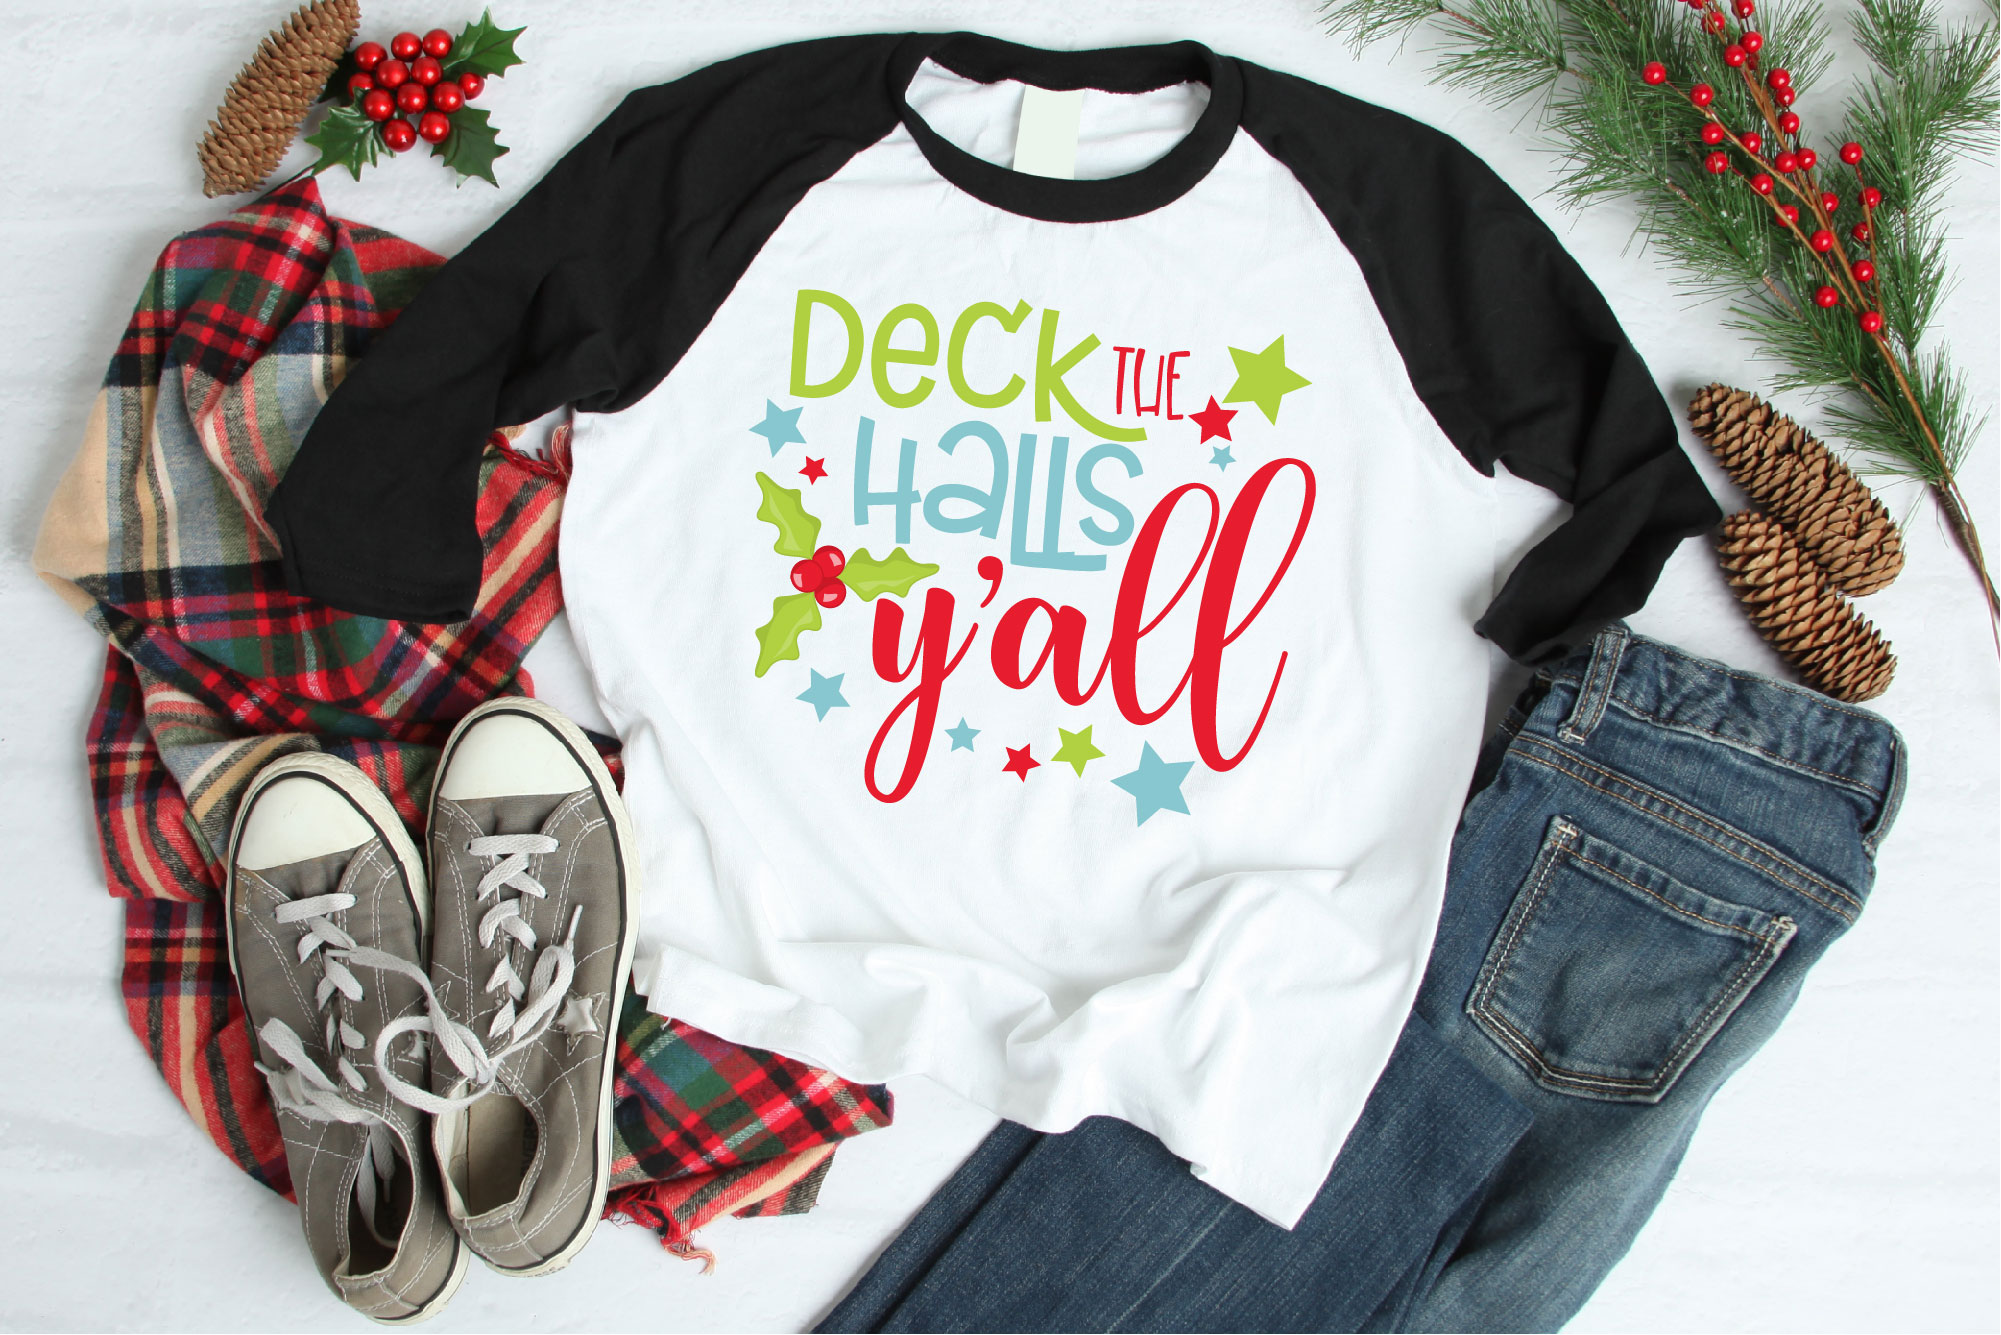 Christmas SVG, Deck The Halls Y'all Sublimation example image 1